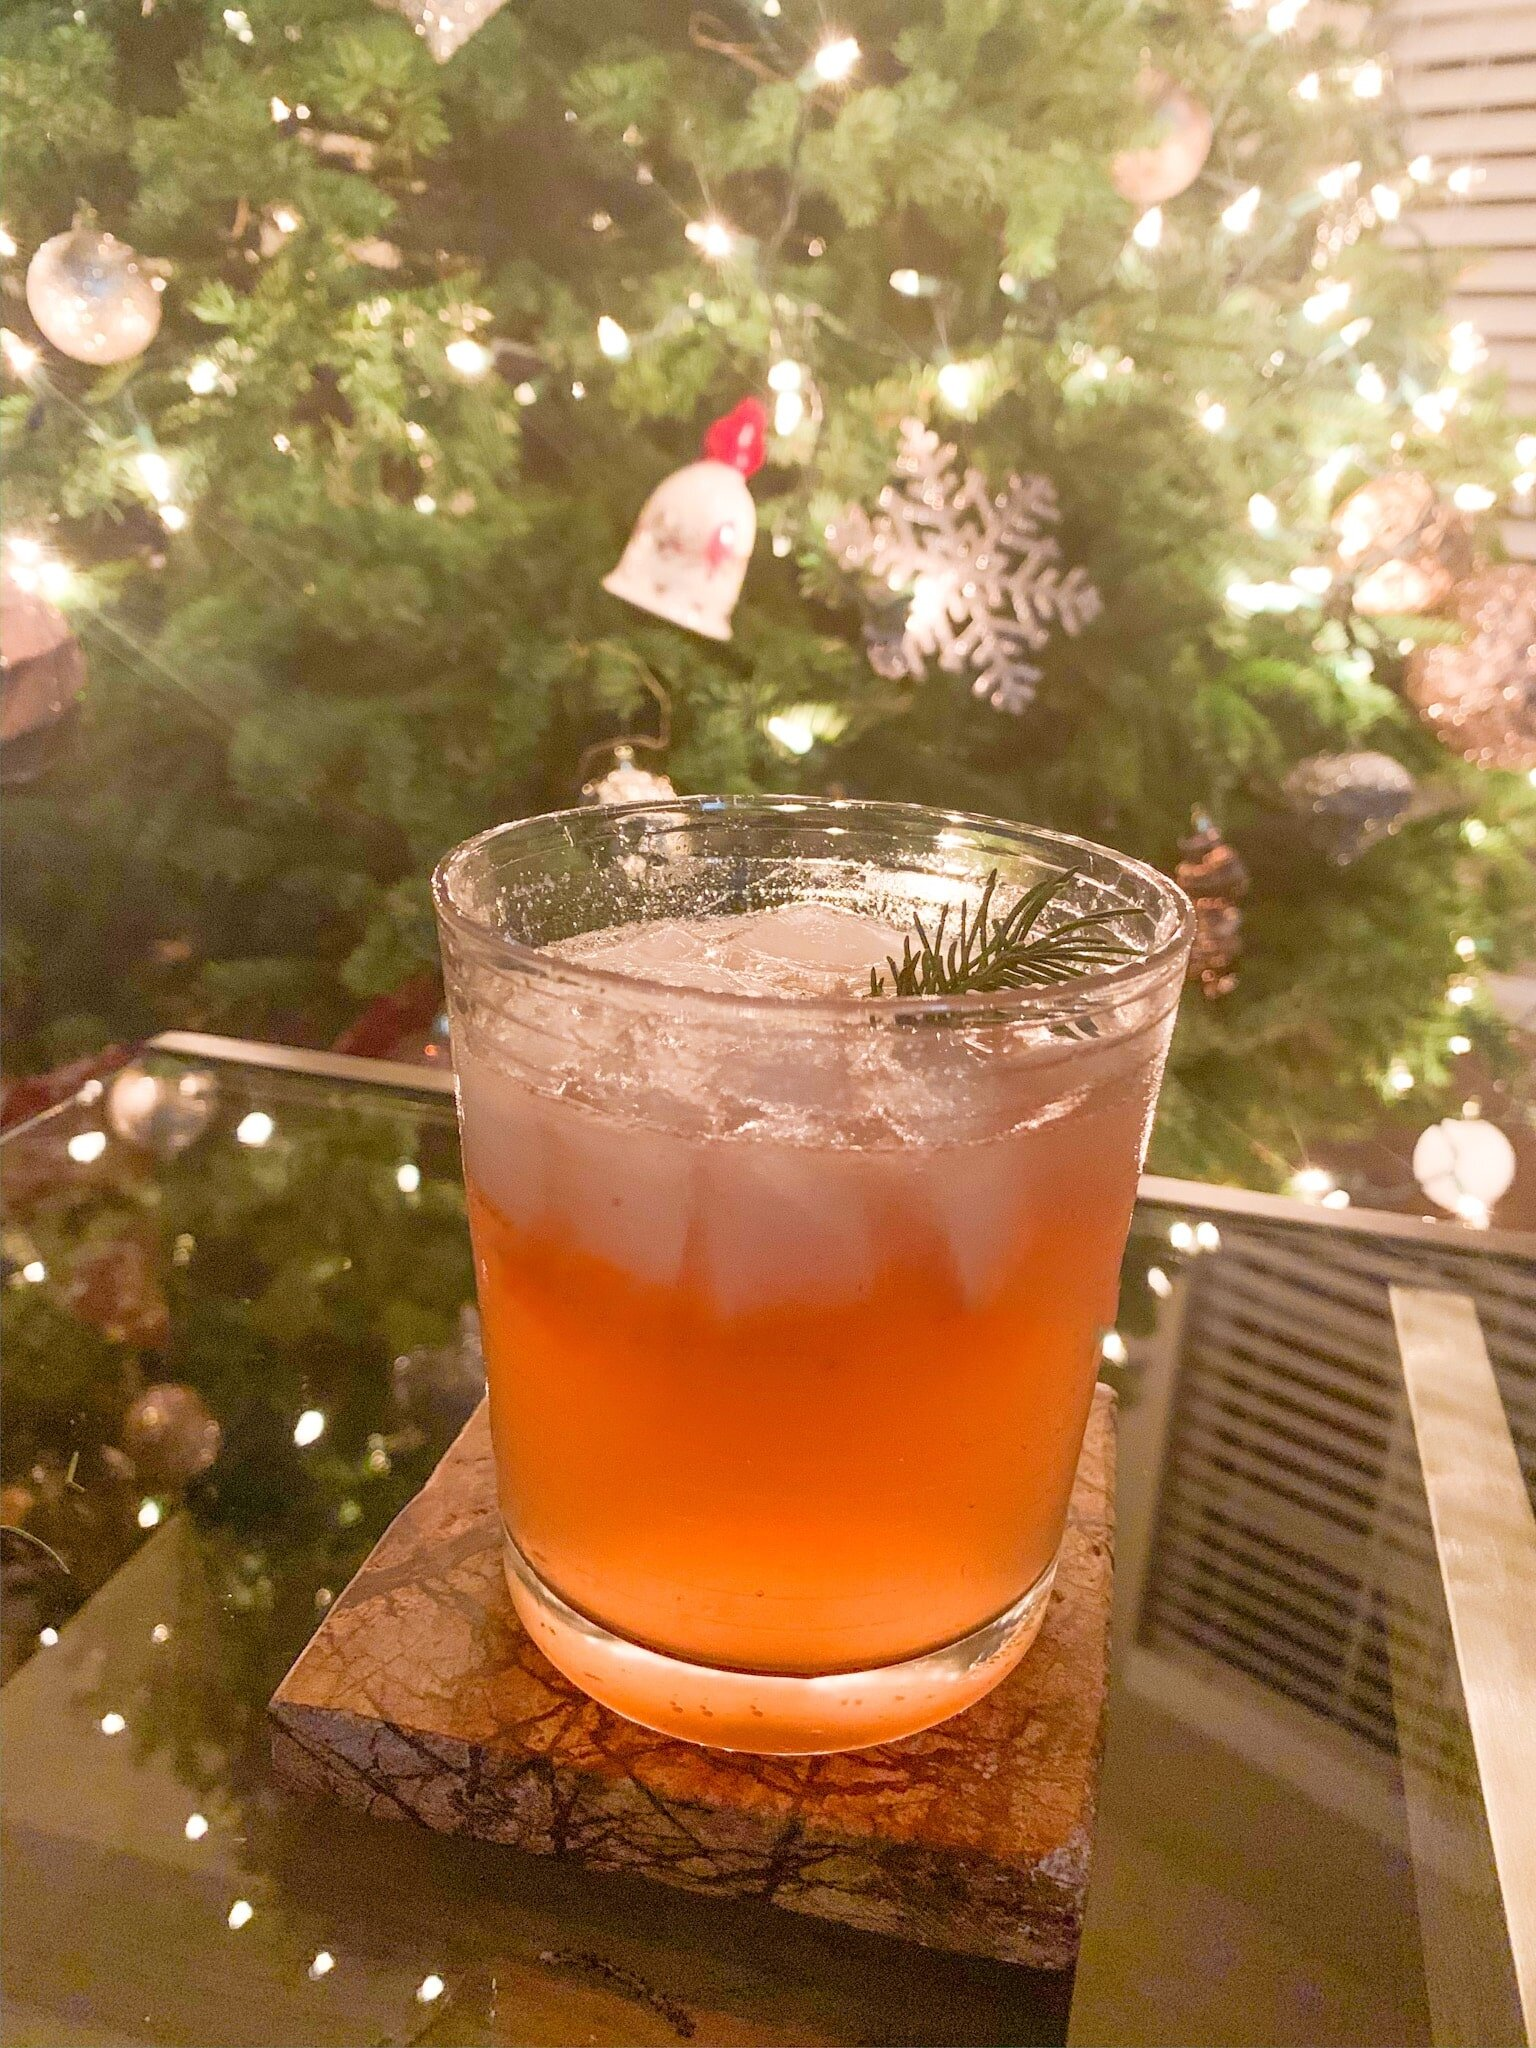 Making a delicious Muddled Pine Christmas gin cocktail